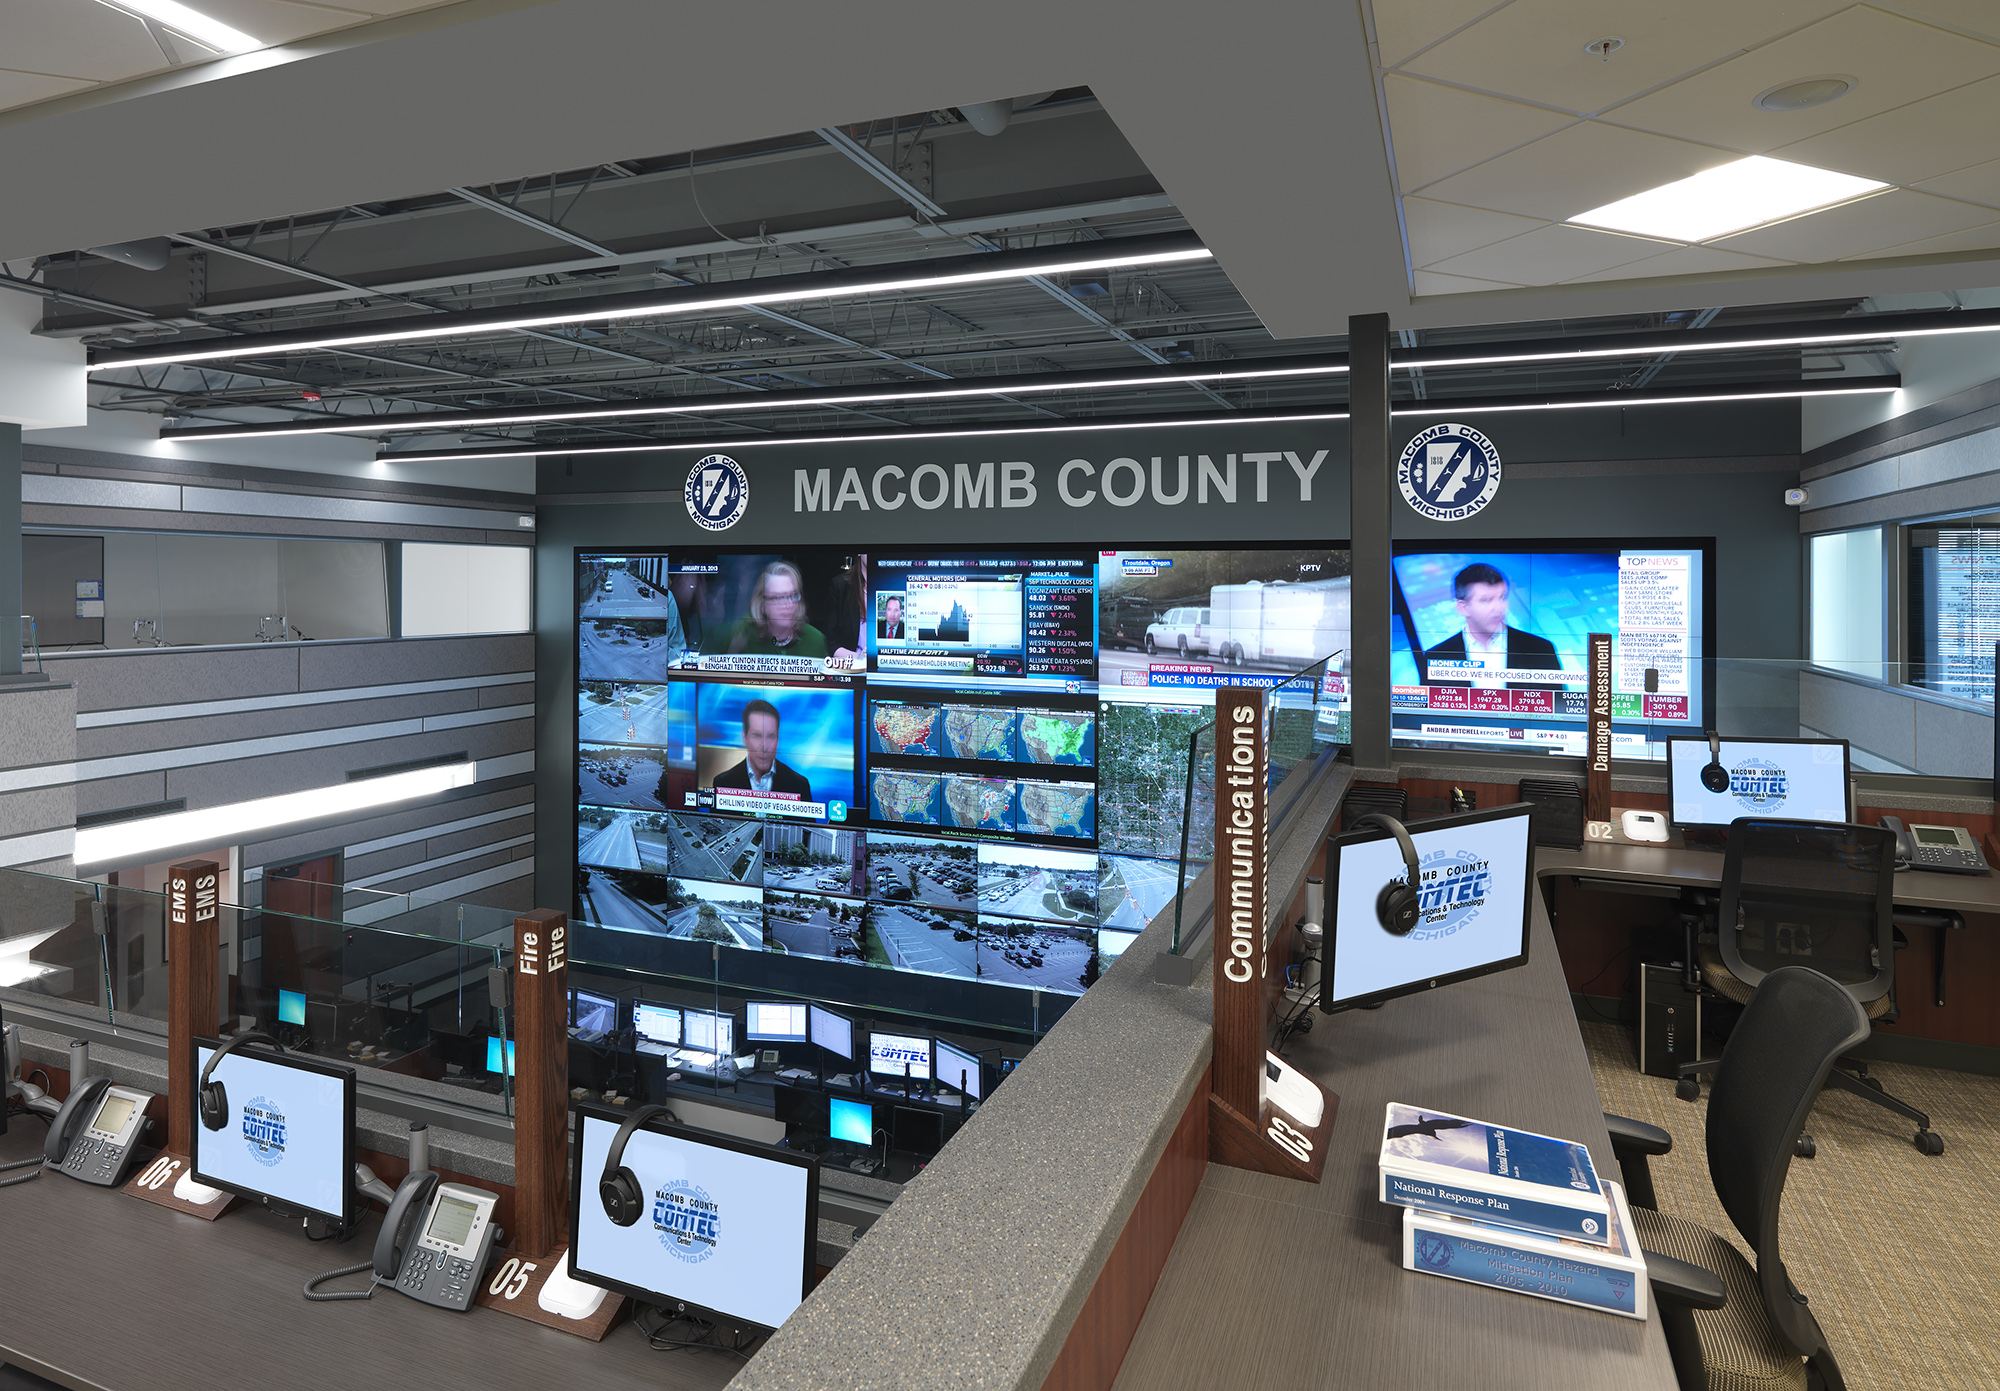 Macomb County Emergency Operations Center - Architectural